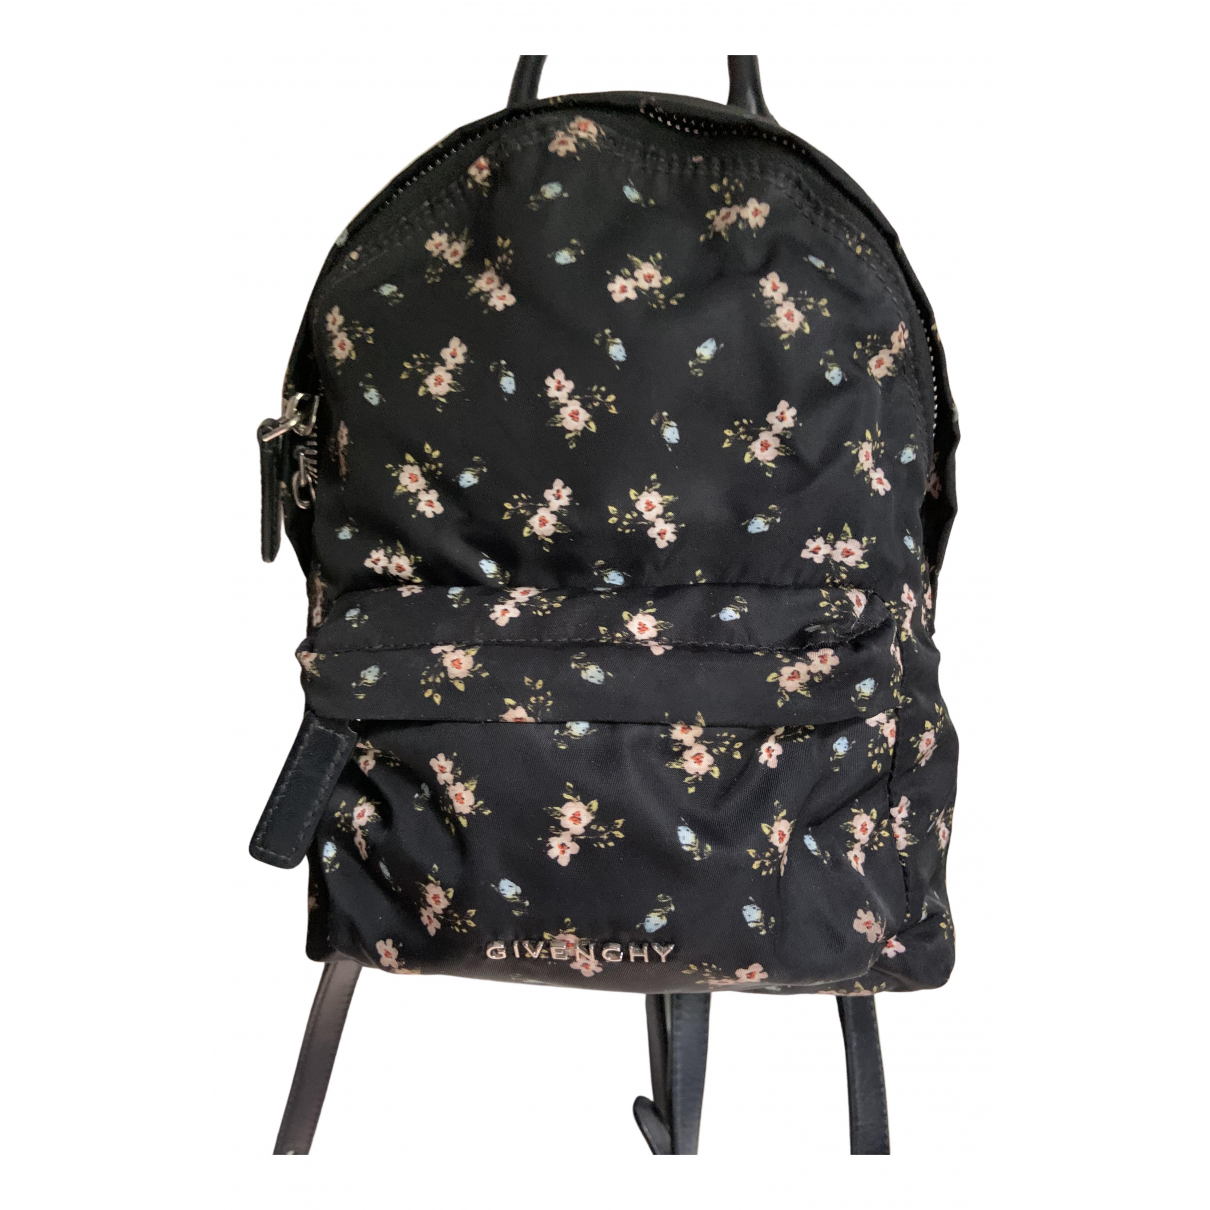 Givenchy N Black backpack for Women N